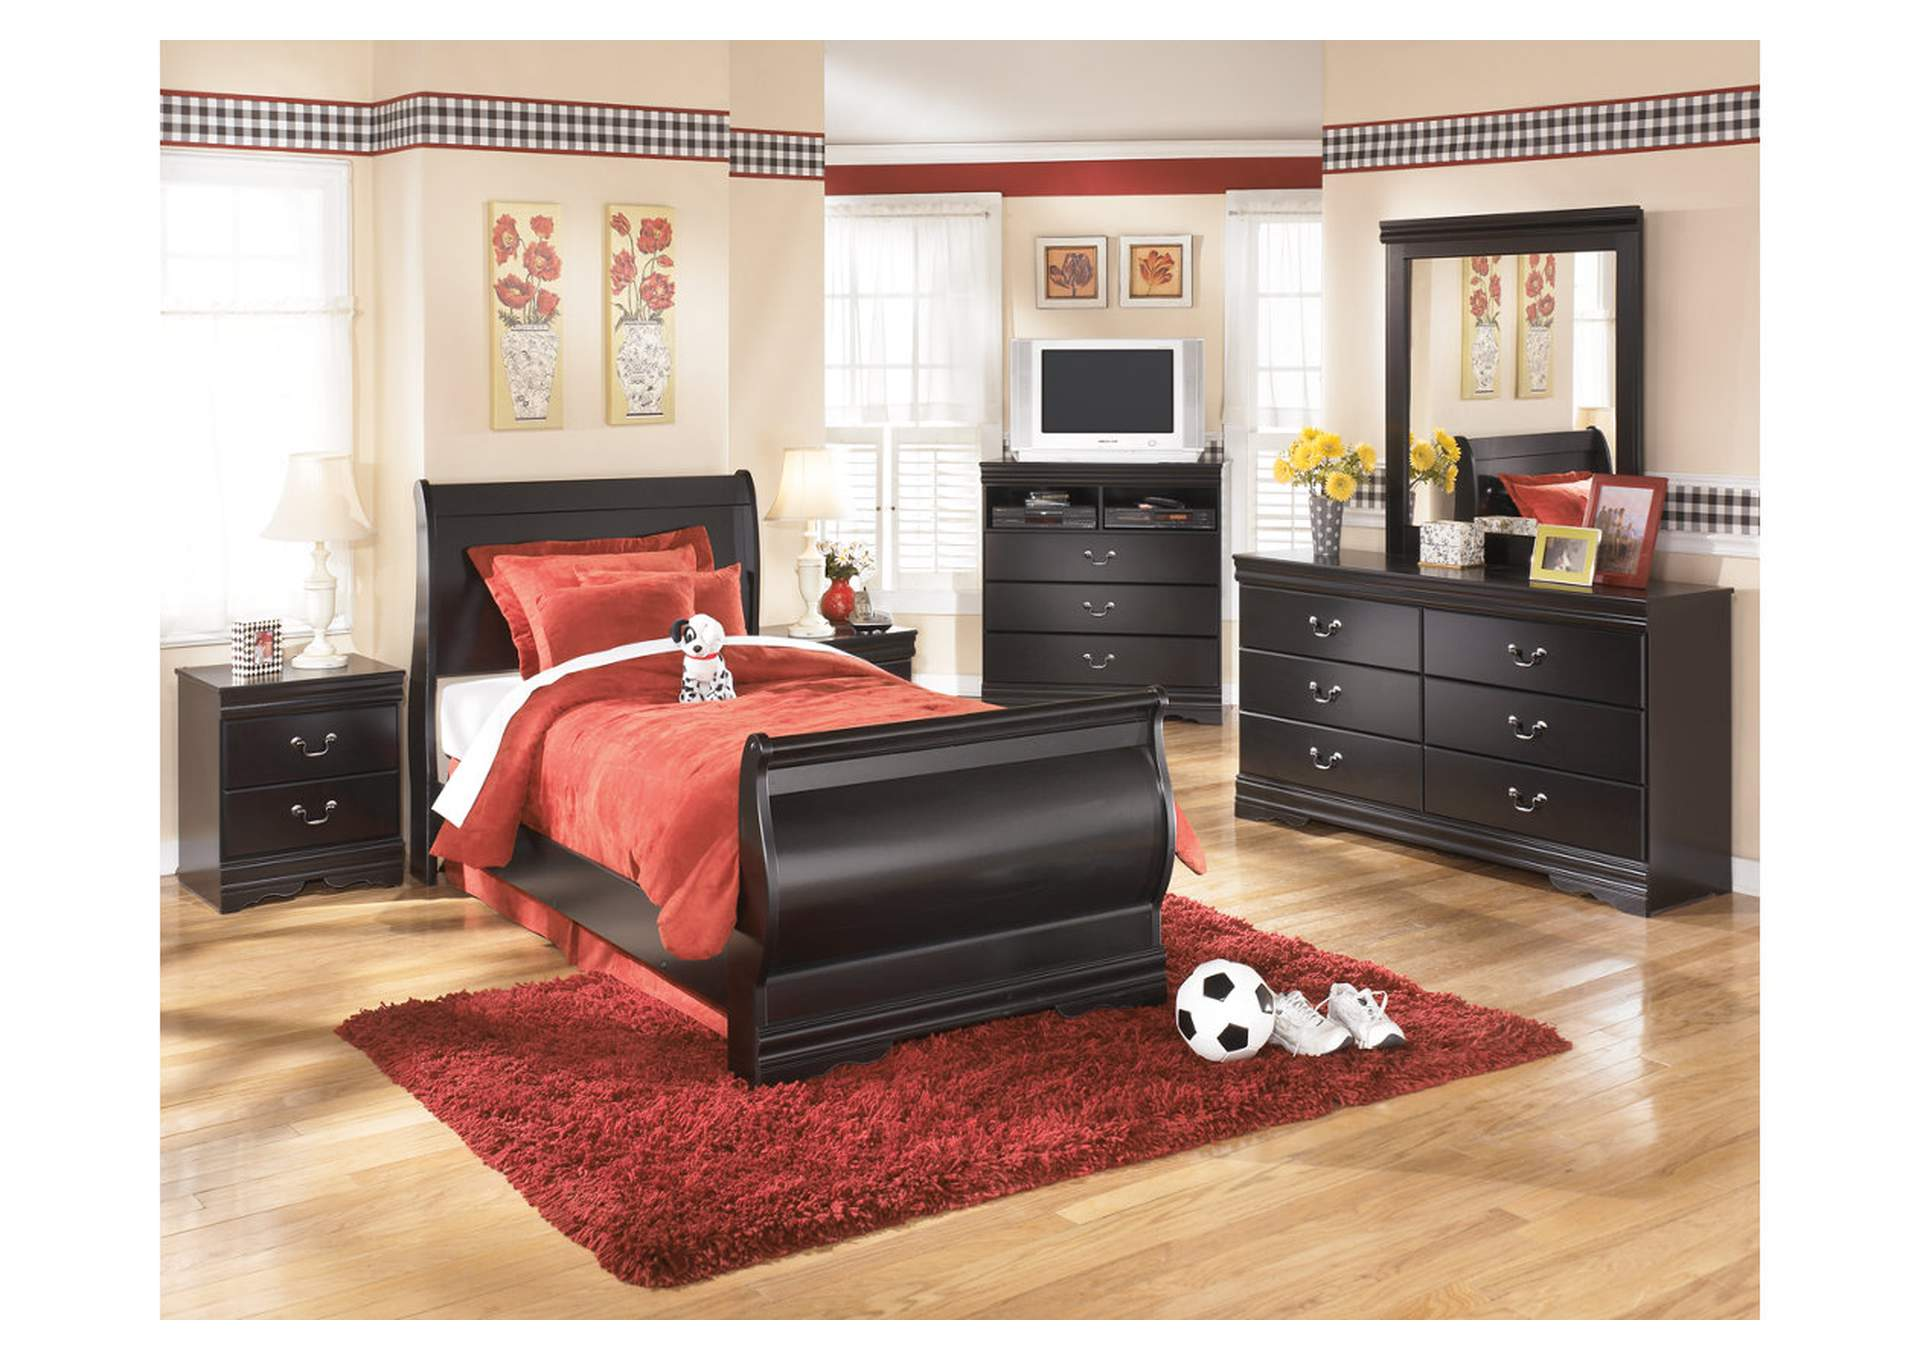 Huey Vineyard Full Sleigh Bed,Signature Design By Ashley